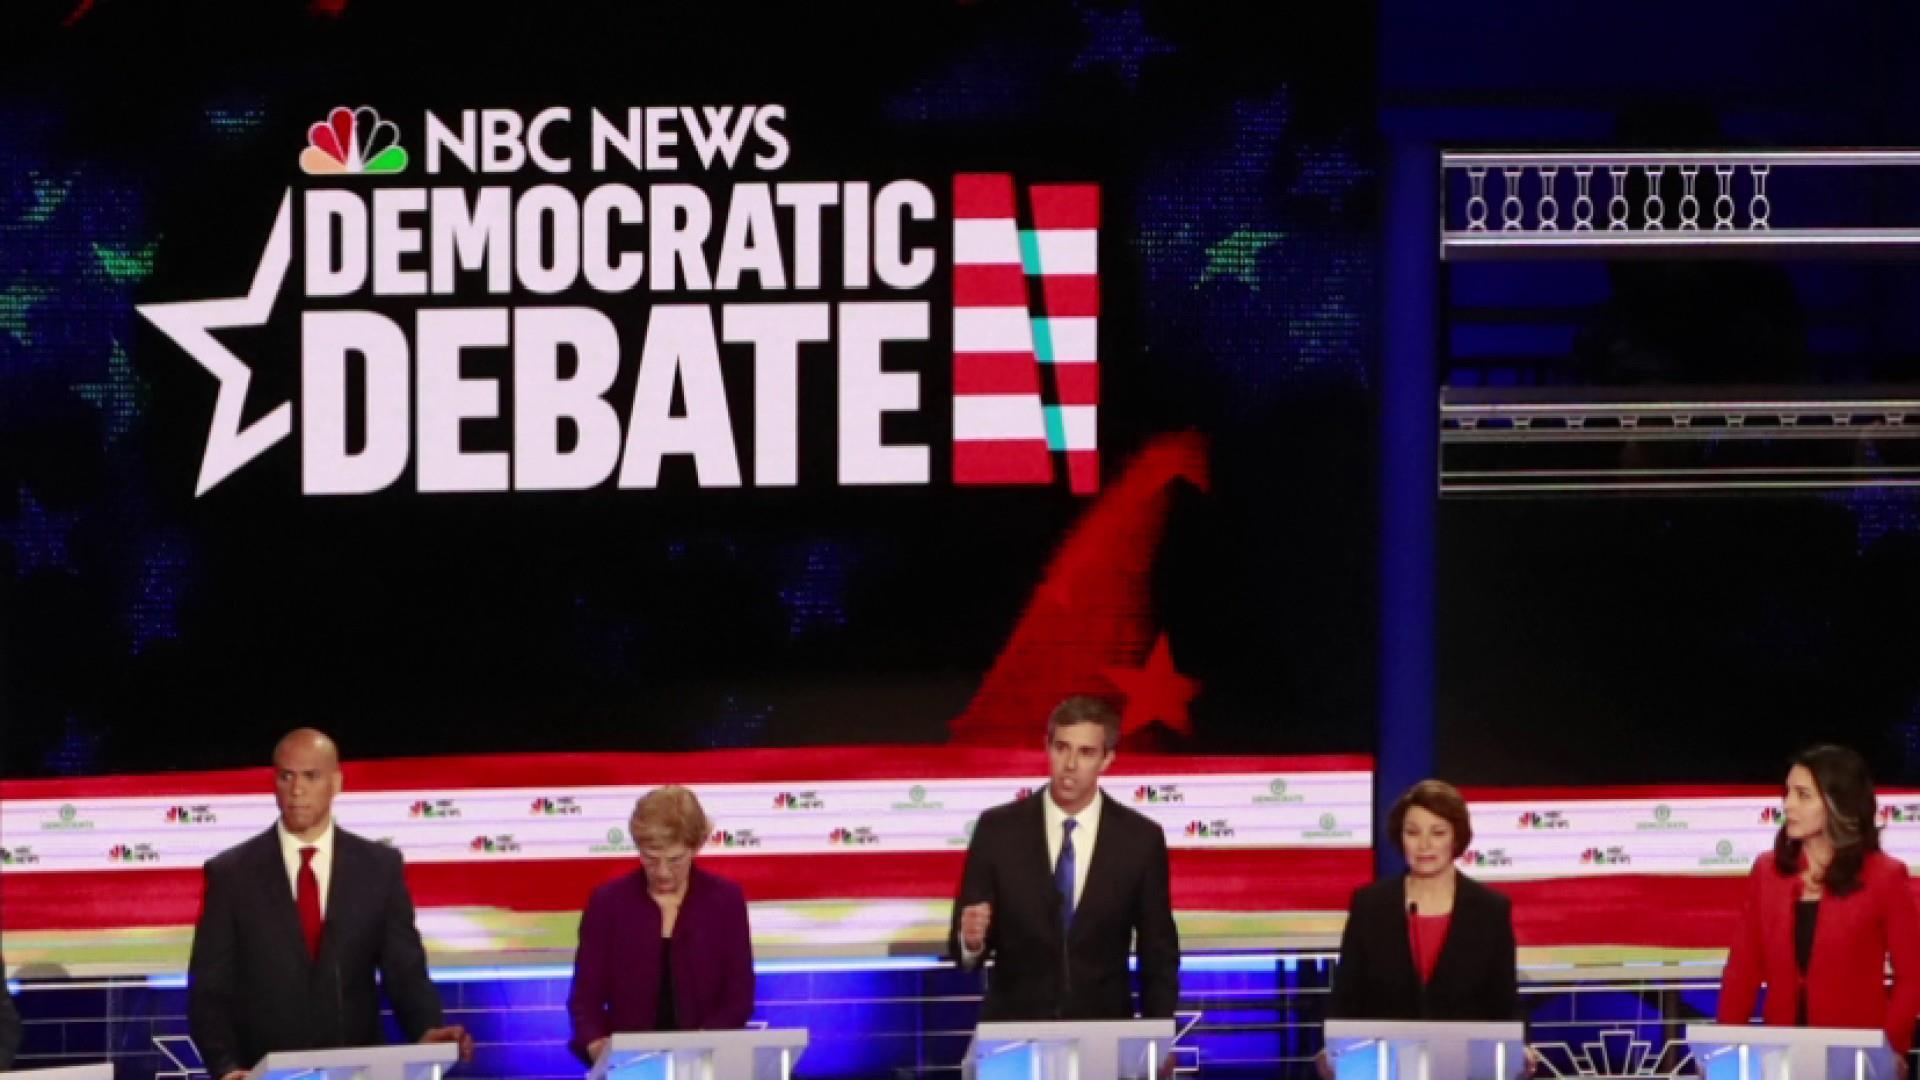 NYT: Anxious Dems ask if there's anybody else to mount 11th hour presidential bid